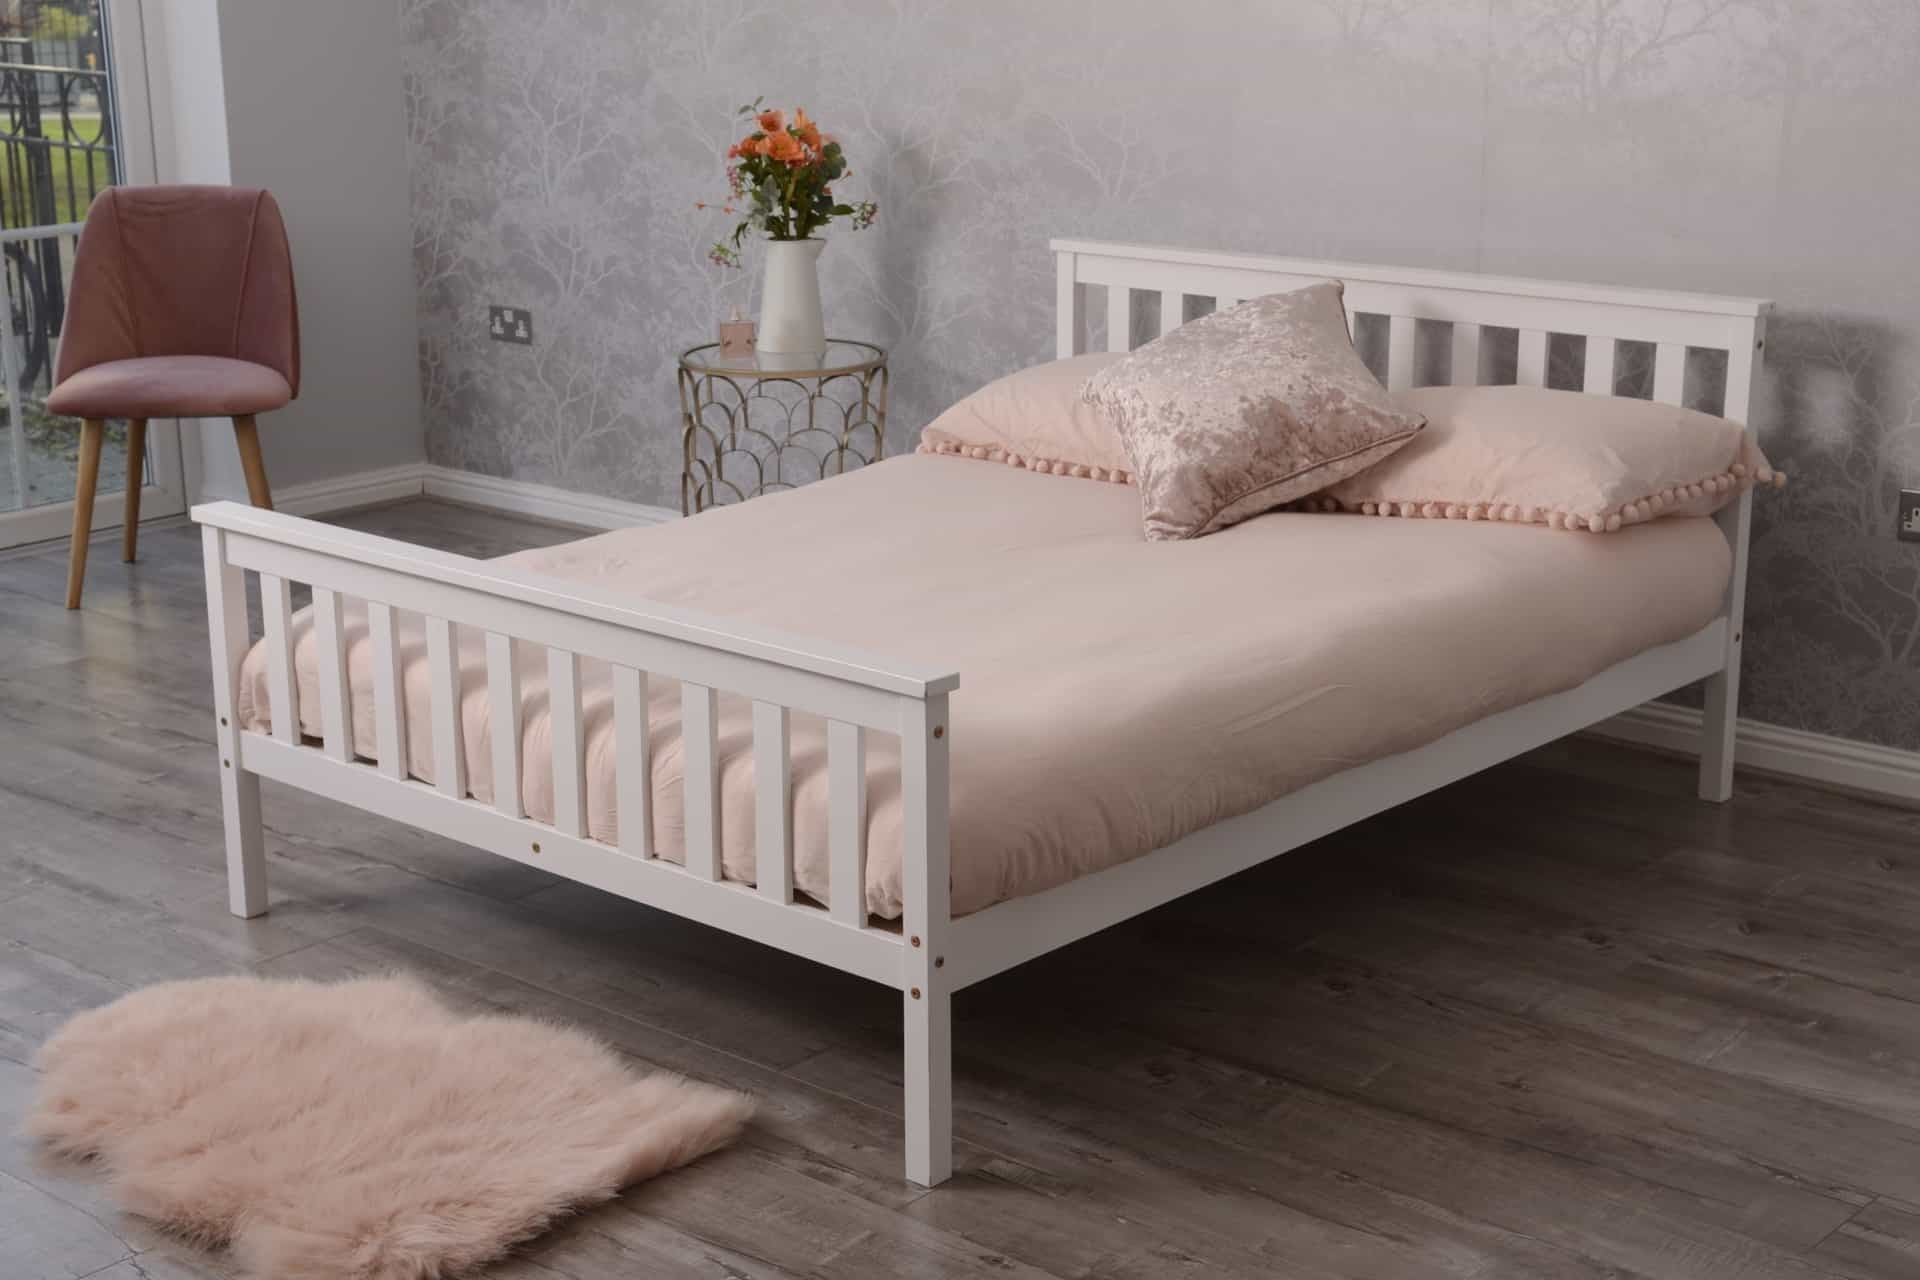 Super Double Pine Wood Bed White Dreams Outdoors Furniture Download Free Architecture Designs Embacsunscenecom